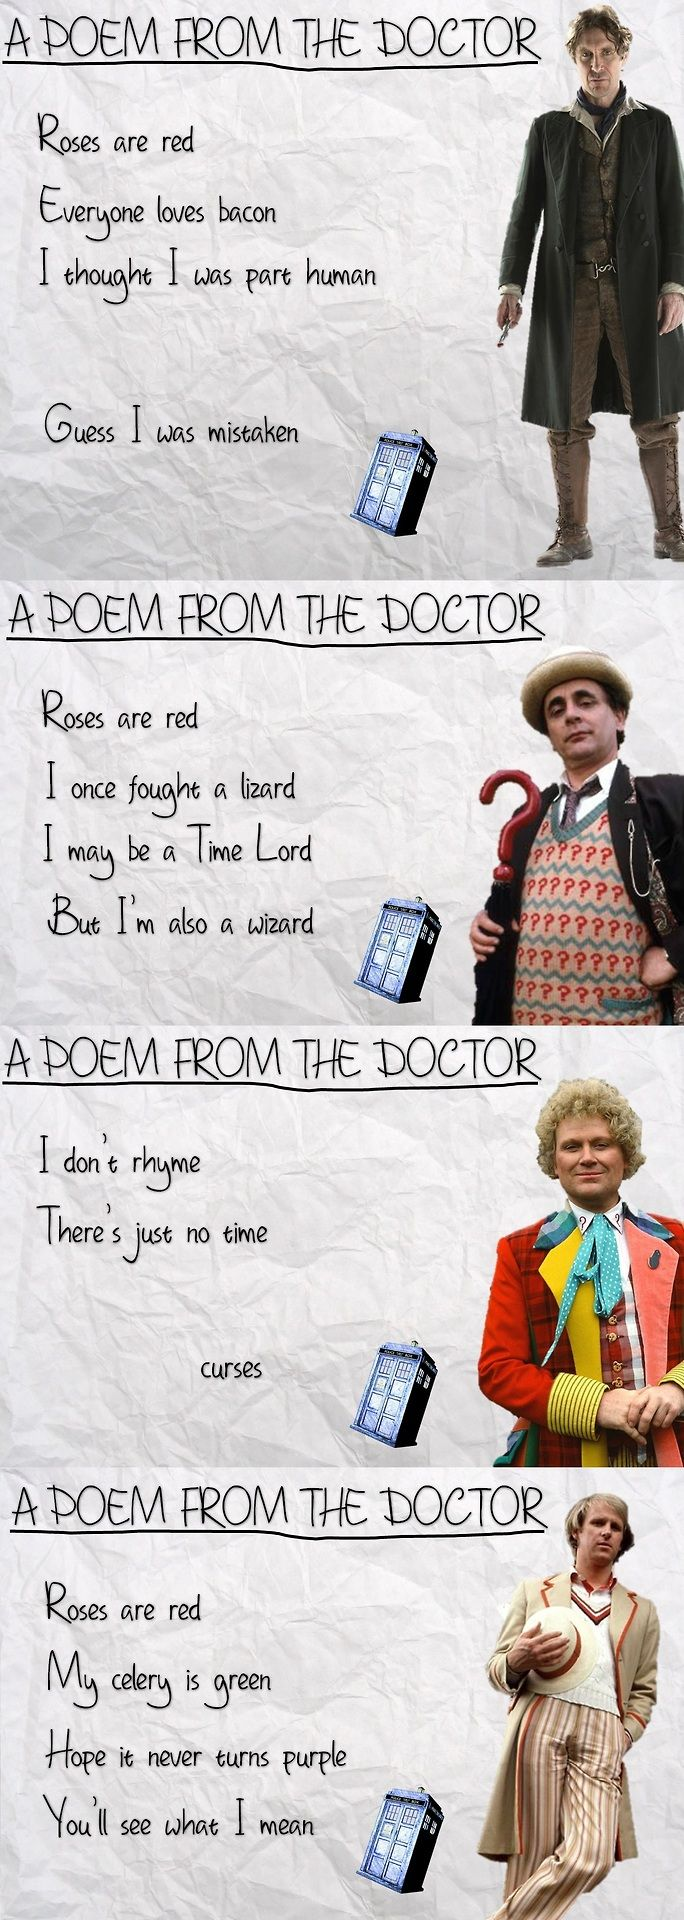 The Doctor's Attempts at Poetry Are Predictably Idiosyncratic